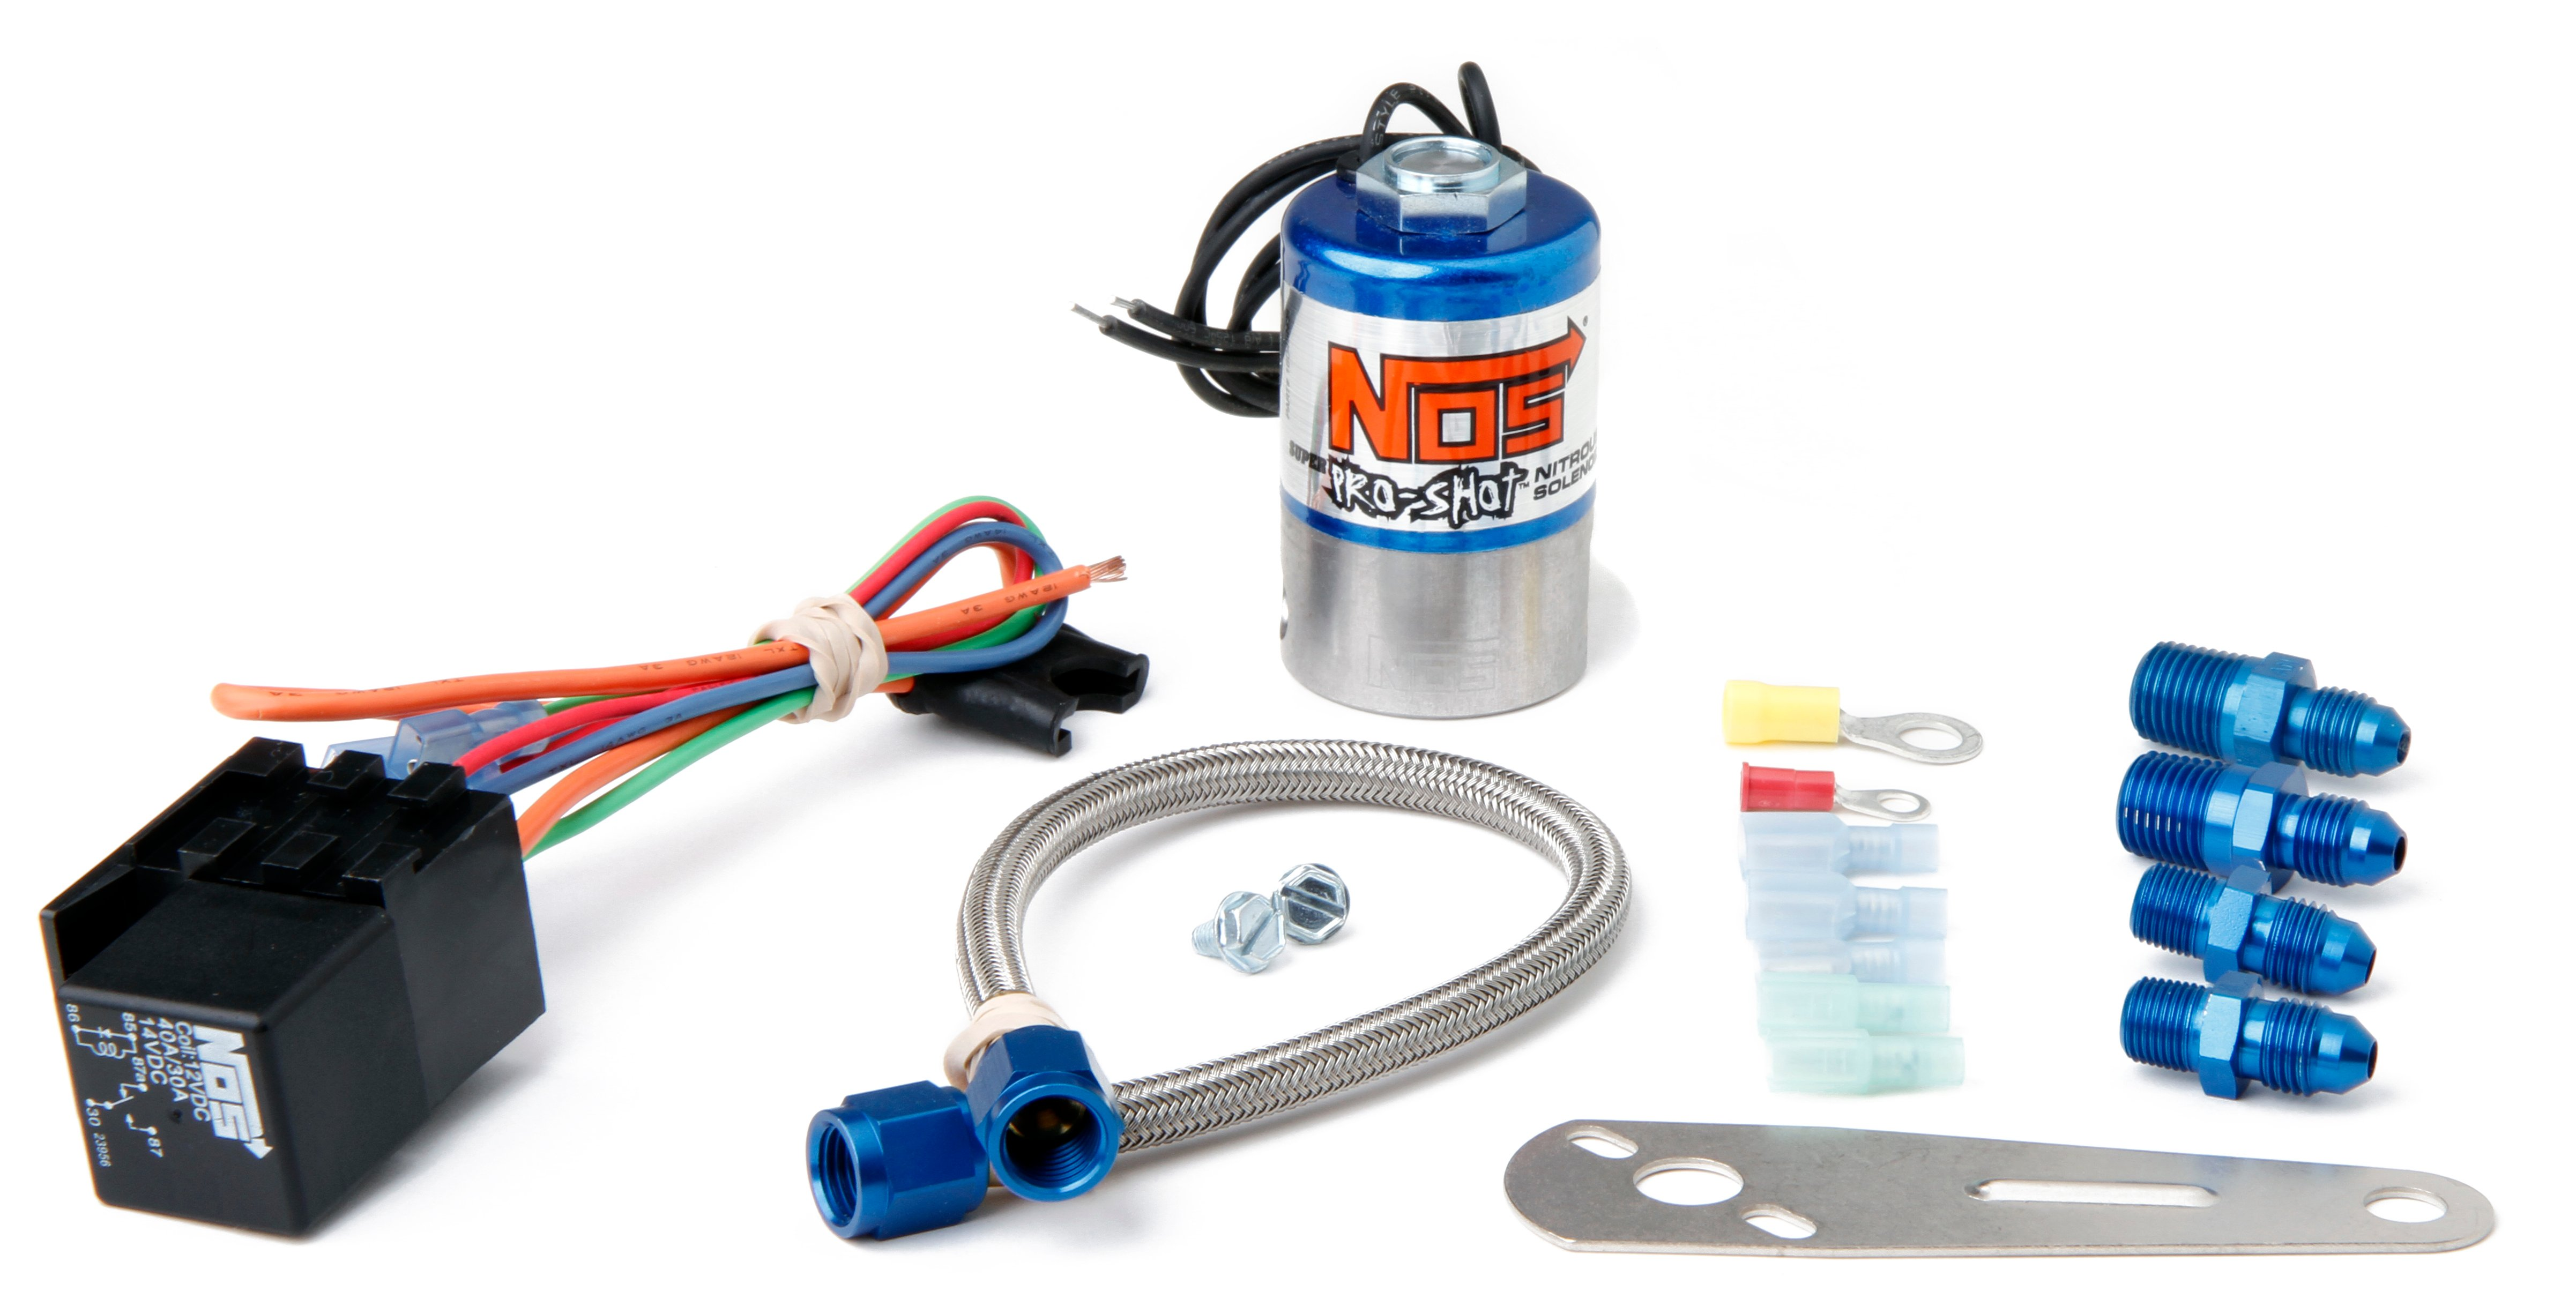 Controllers and accessories holley performance products safety application kit safety application kit safety application kit for time based progressive nitrous control on sciox Gallery